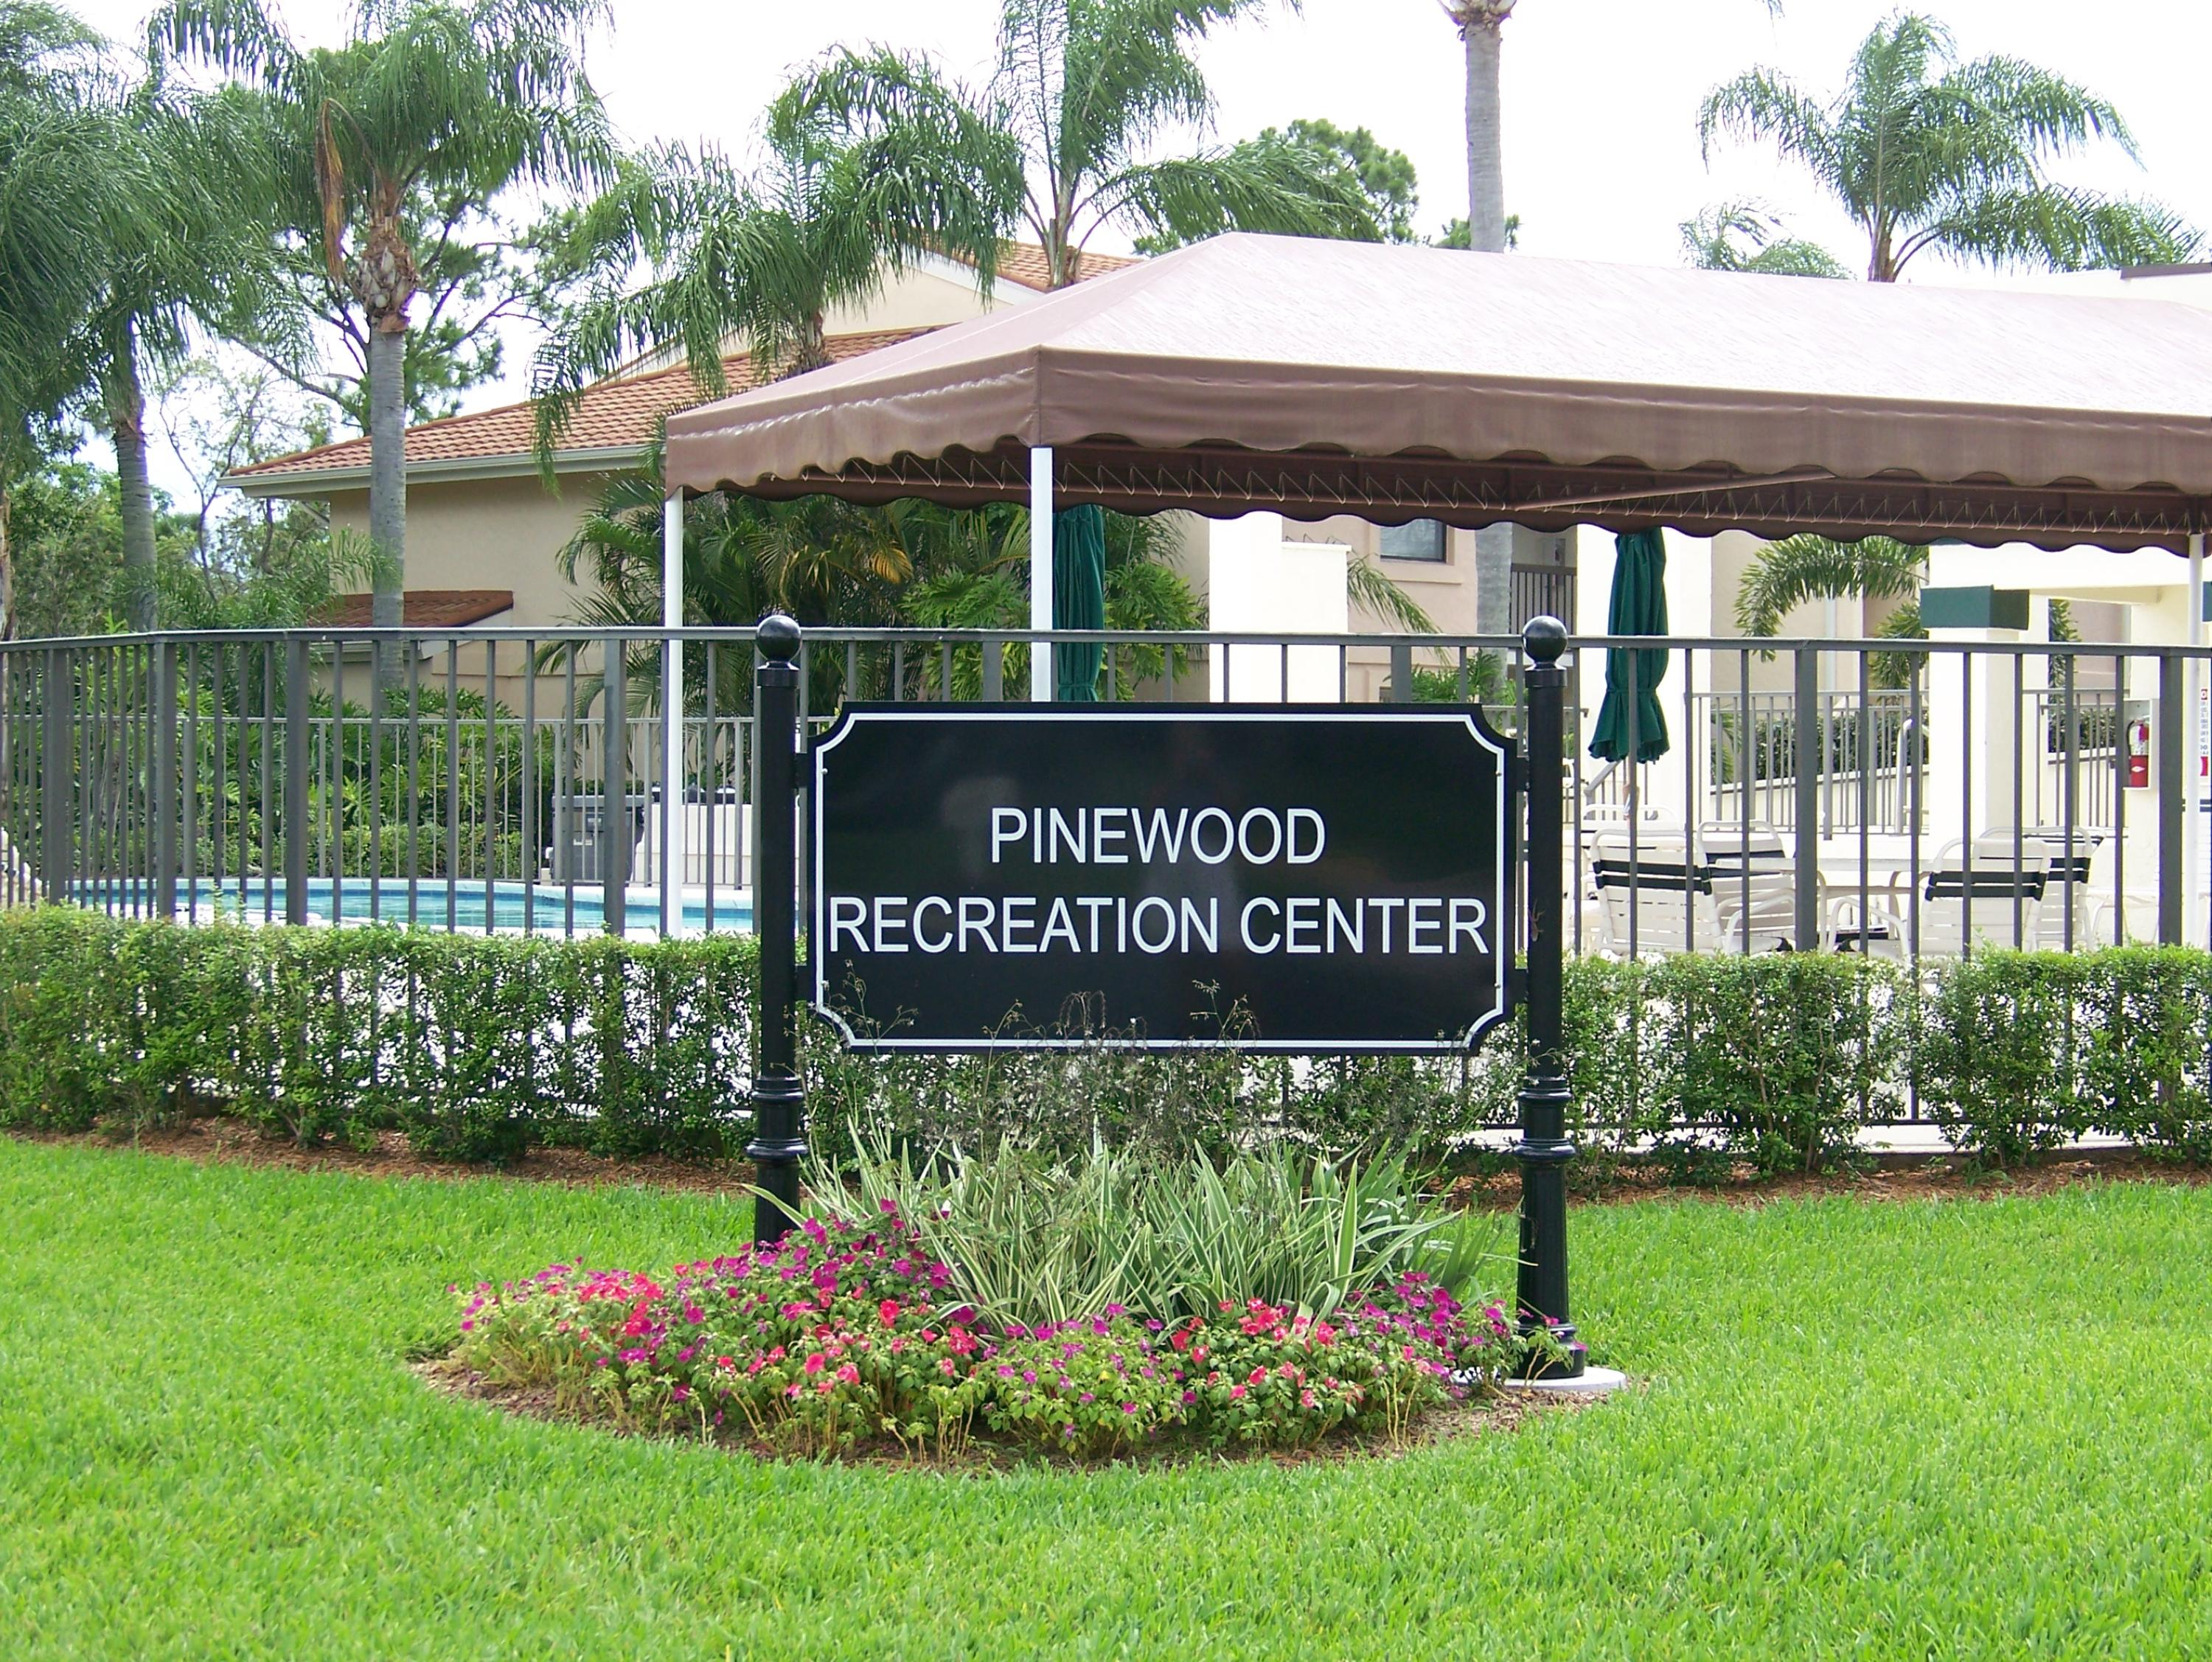 13335 Touchstone Place D103, Palm Beach Gardens, Florida 33418, 2 Bedrooms Bedrooms, ,2 BathroomsBathrooms,F,Condominium,Touchstone Place,RX-10491988